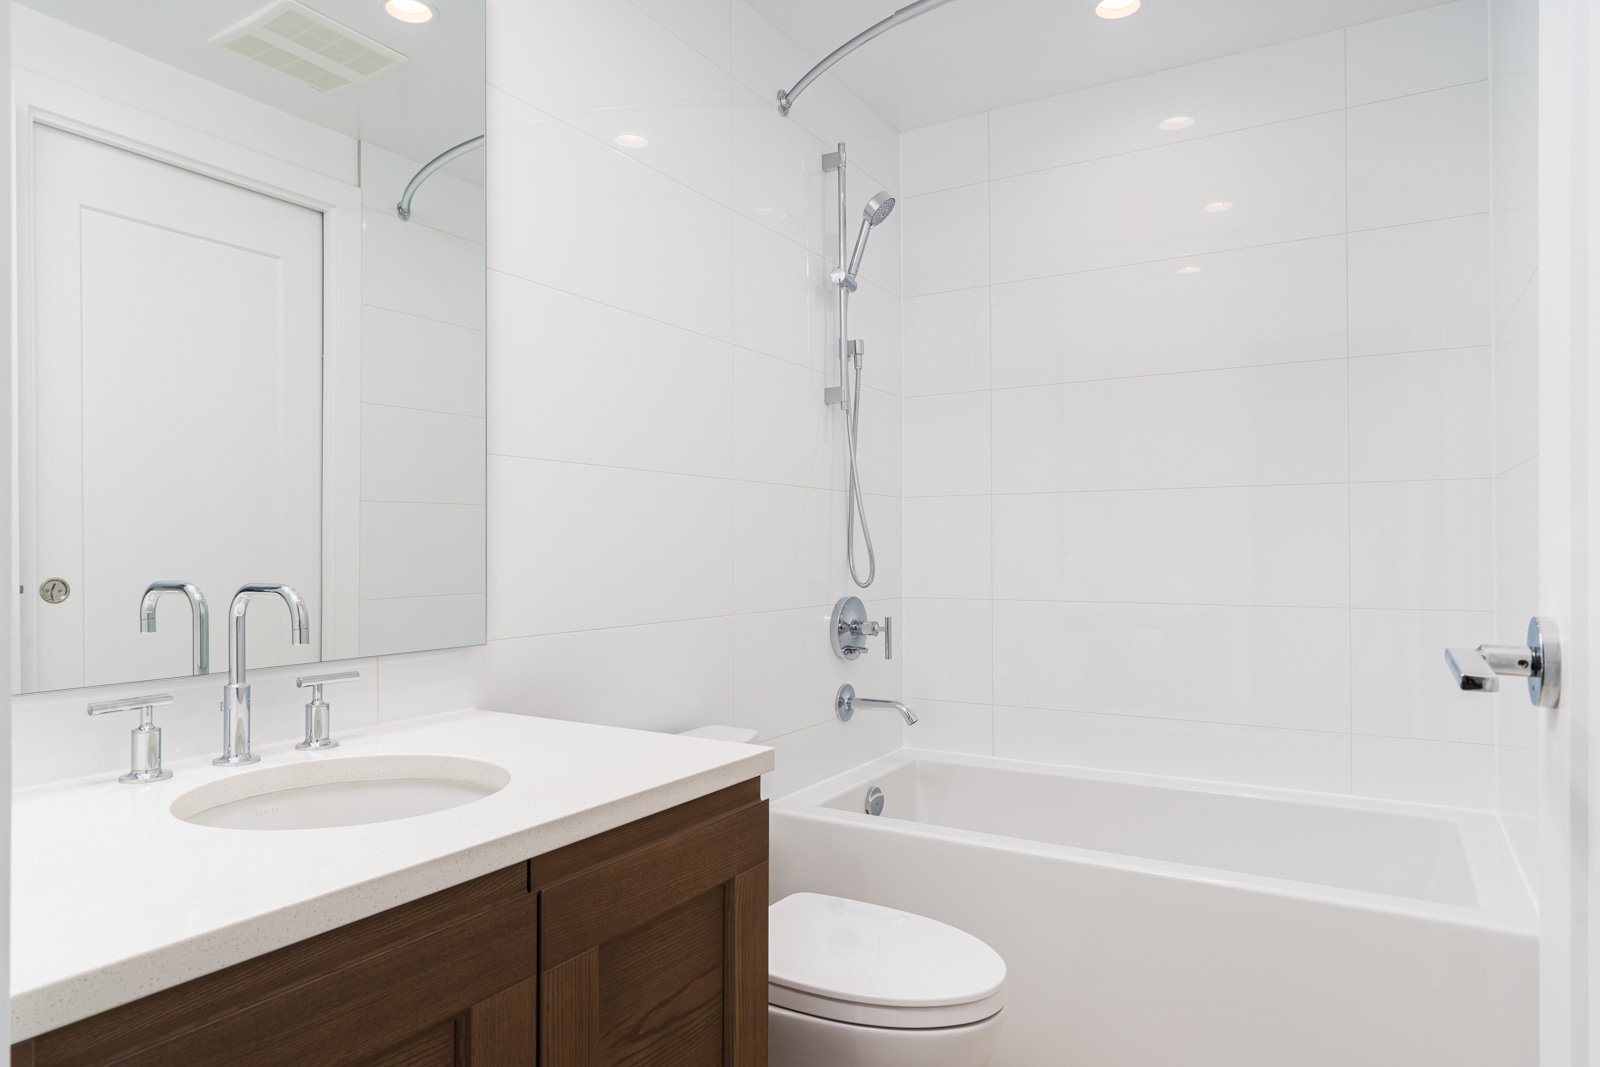 bathroom with white stalls in a rental condo in vancouver at ivy at the park near university of British Columbia